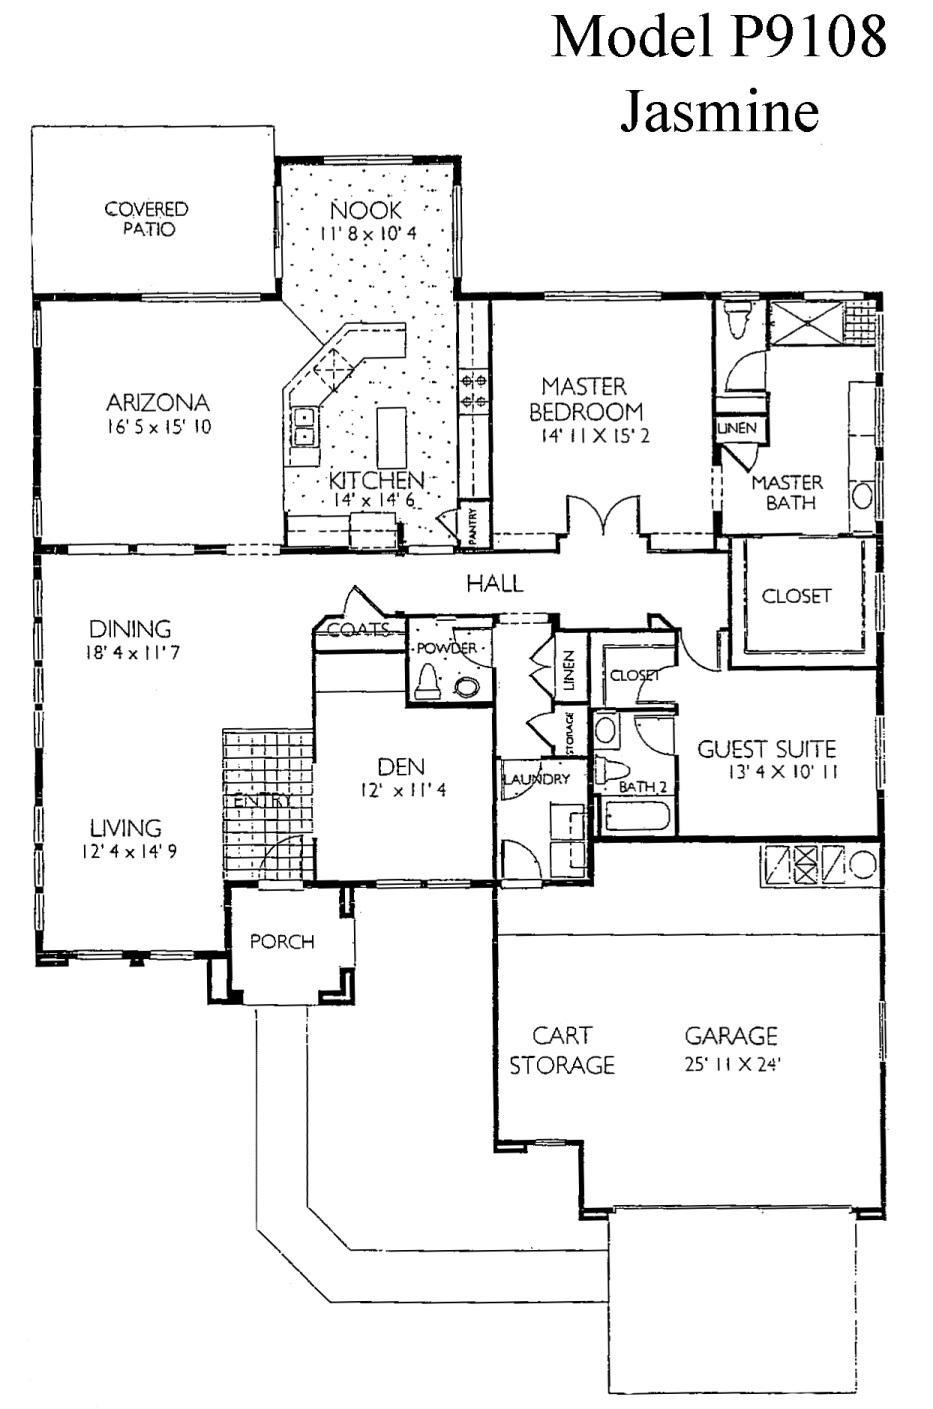 Sun City Grand Jasmine floor plan, Del Webb Sun City Grand Floor Plan Model Home House Plans Floorplans Models in Surprise Phoenix Arizona AZ Ken Meade Realty Kathy Anderson